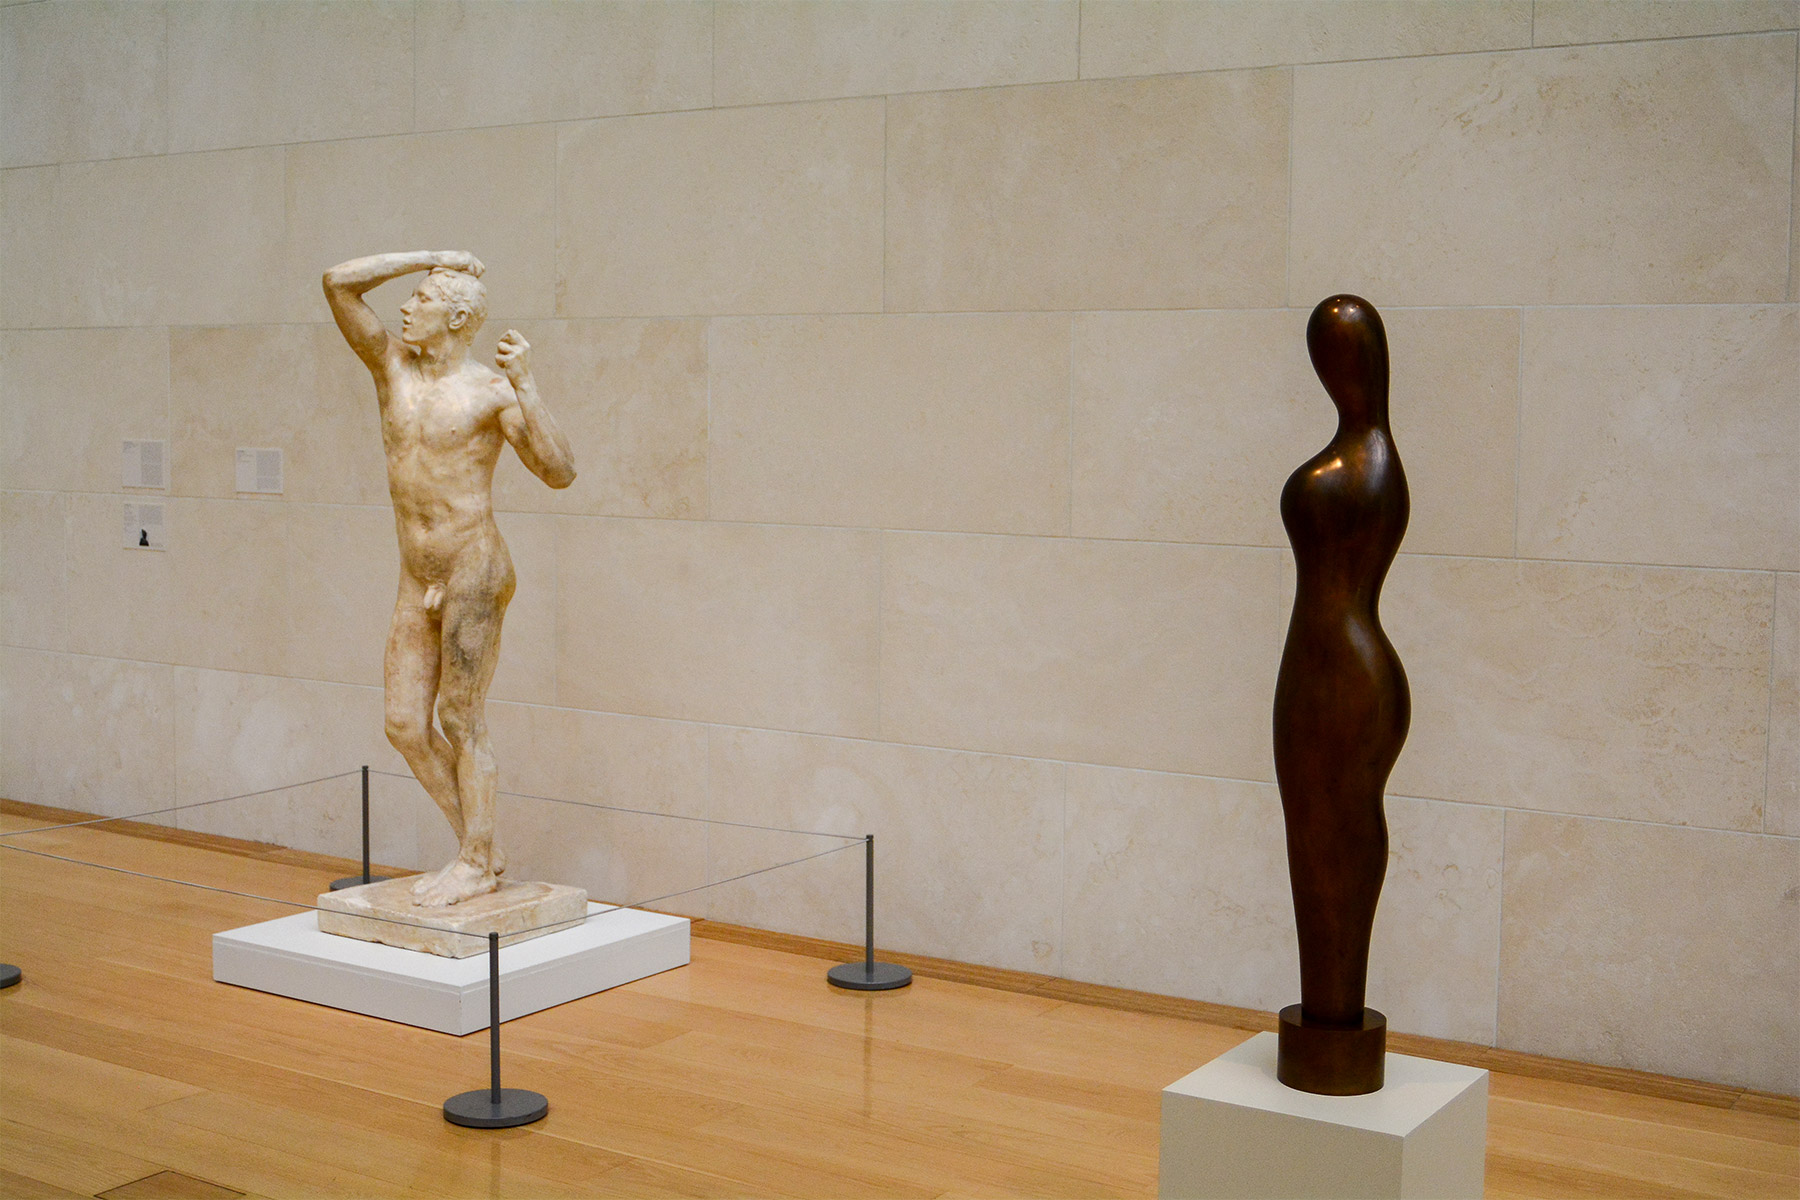 two classic sculptures one by Rodin and one by Arp